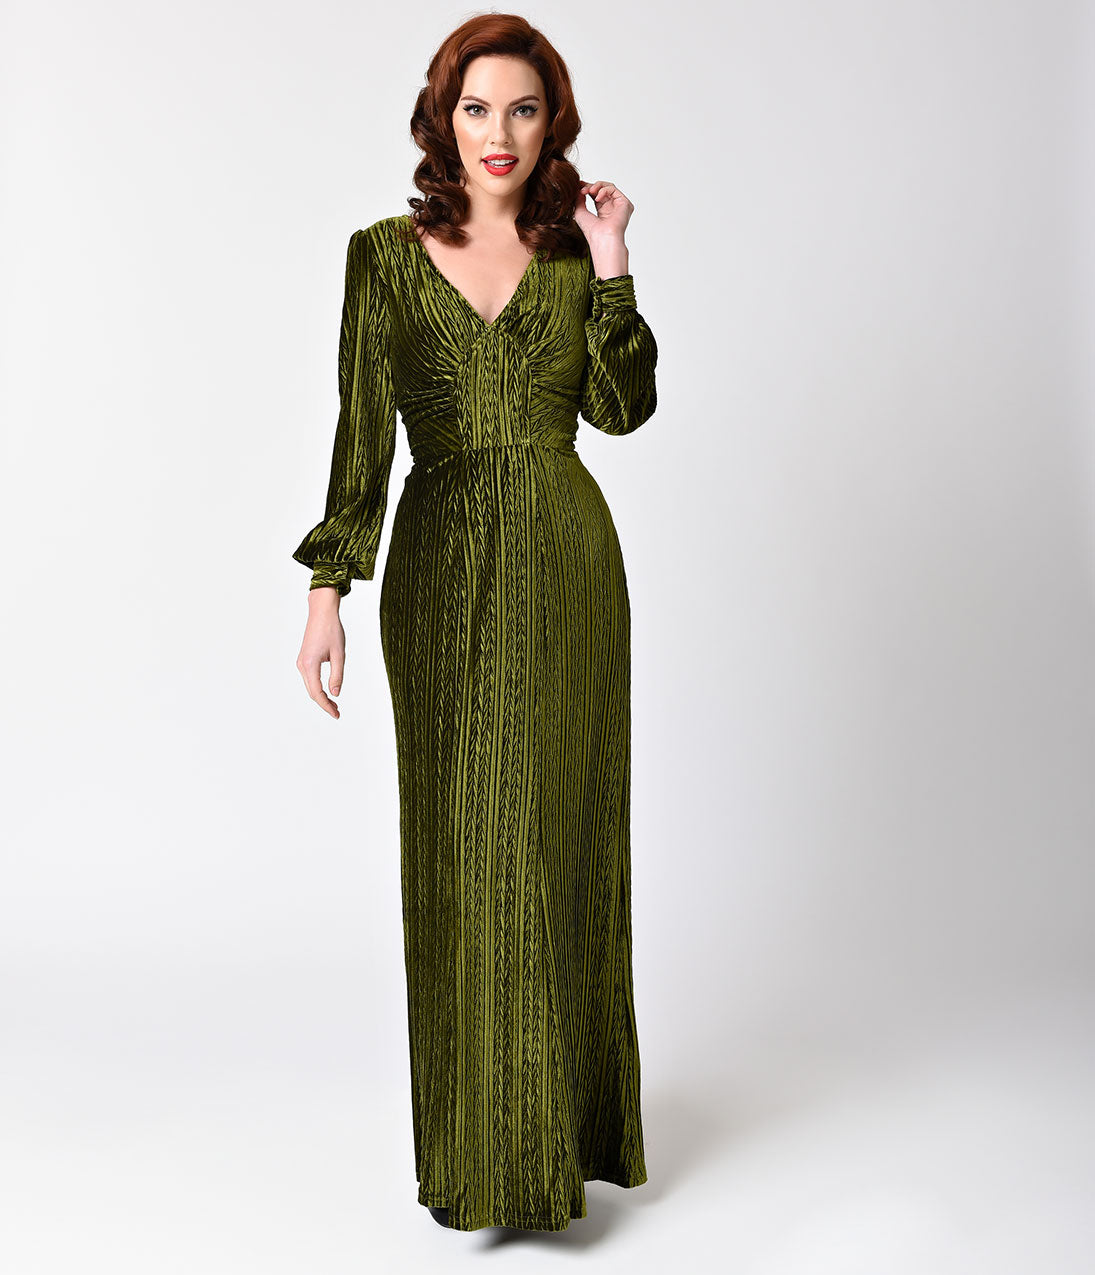 1930s Evening Dresses | Old Hollywood Dress Voodoo Vixen Olive Green Velvet Long Sleeve Maxi Dress $88.00 AT vintagedancer.com